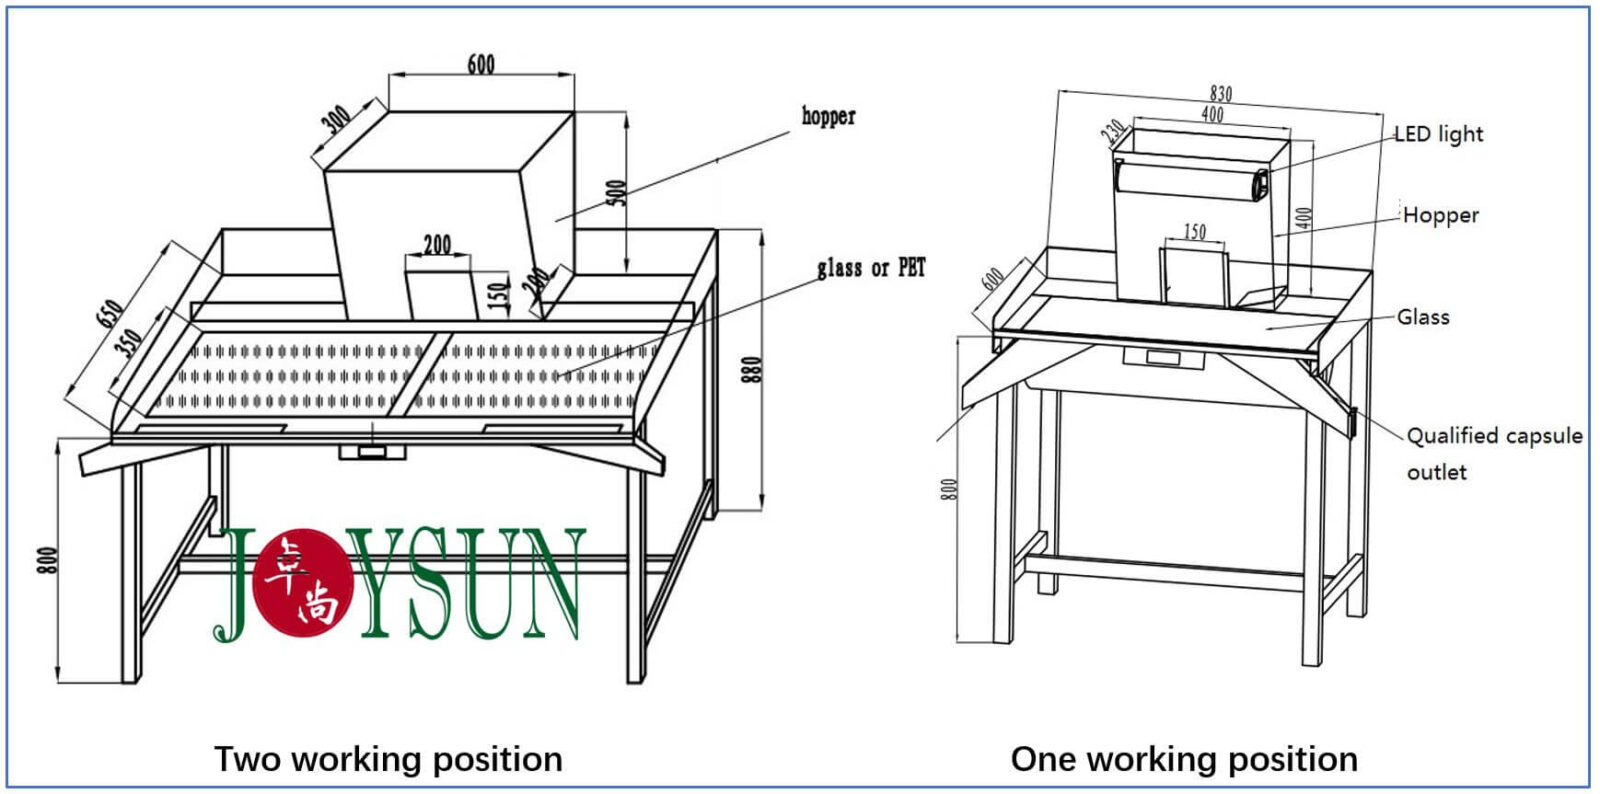 capsule inspection table drawing